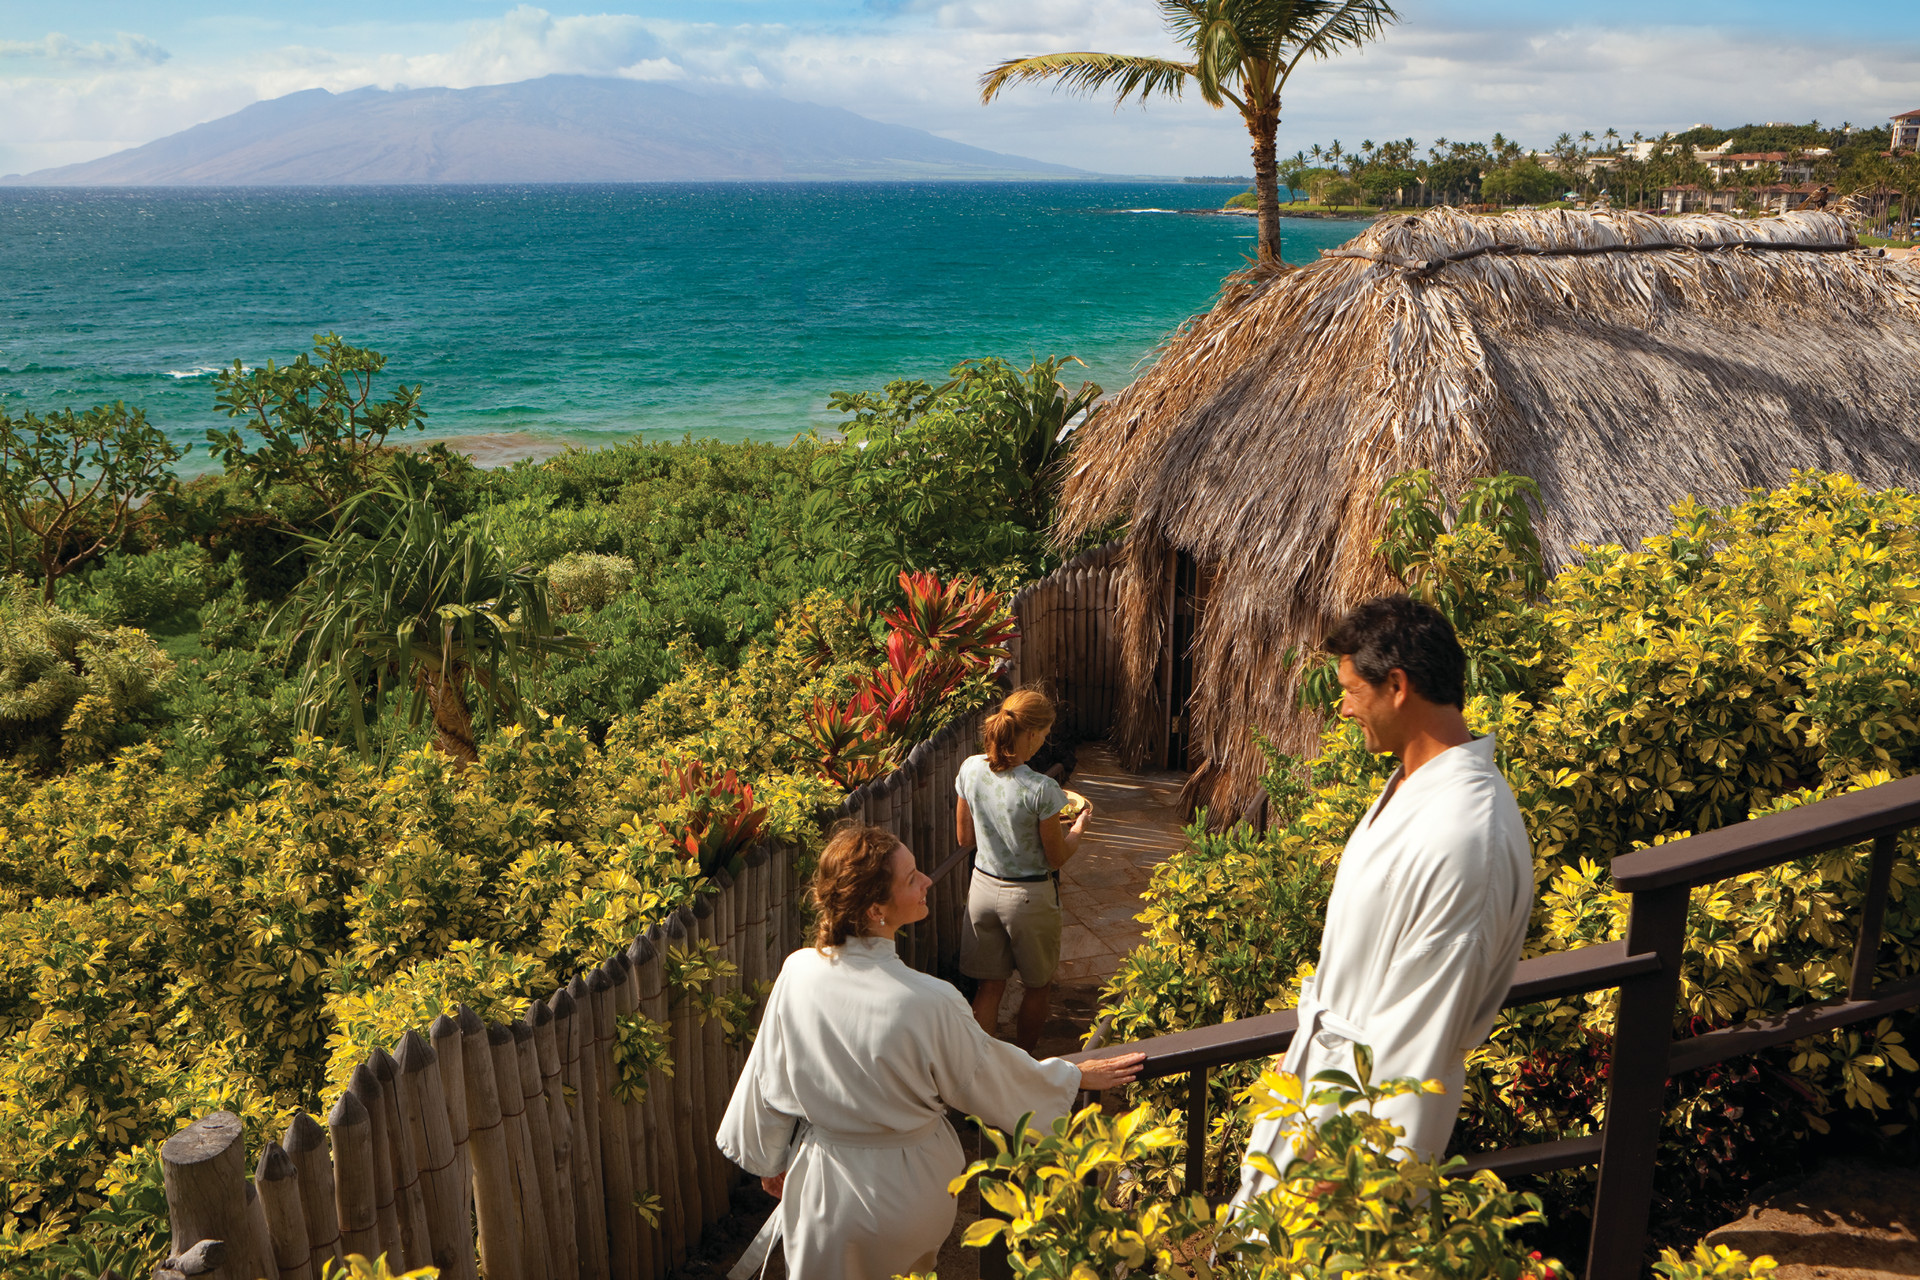 Fives Spas for a Therapeutic Maui Vacation : Aloha Stoked : Maui's